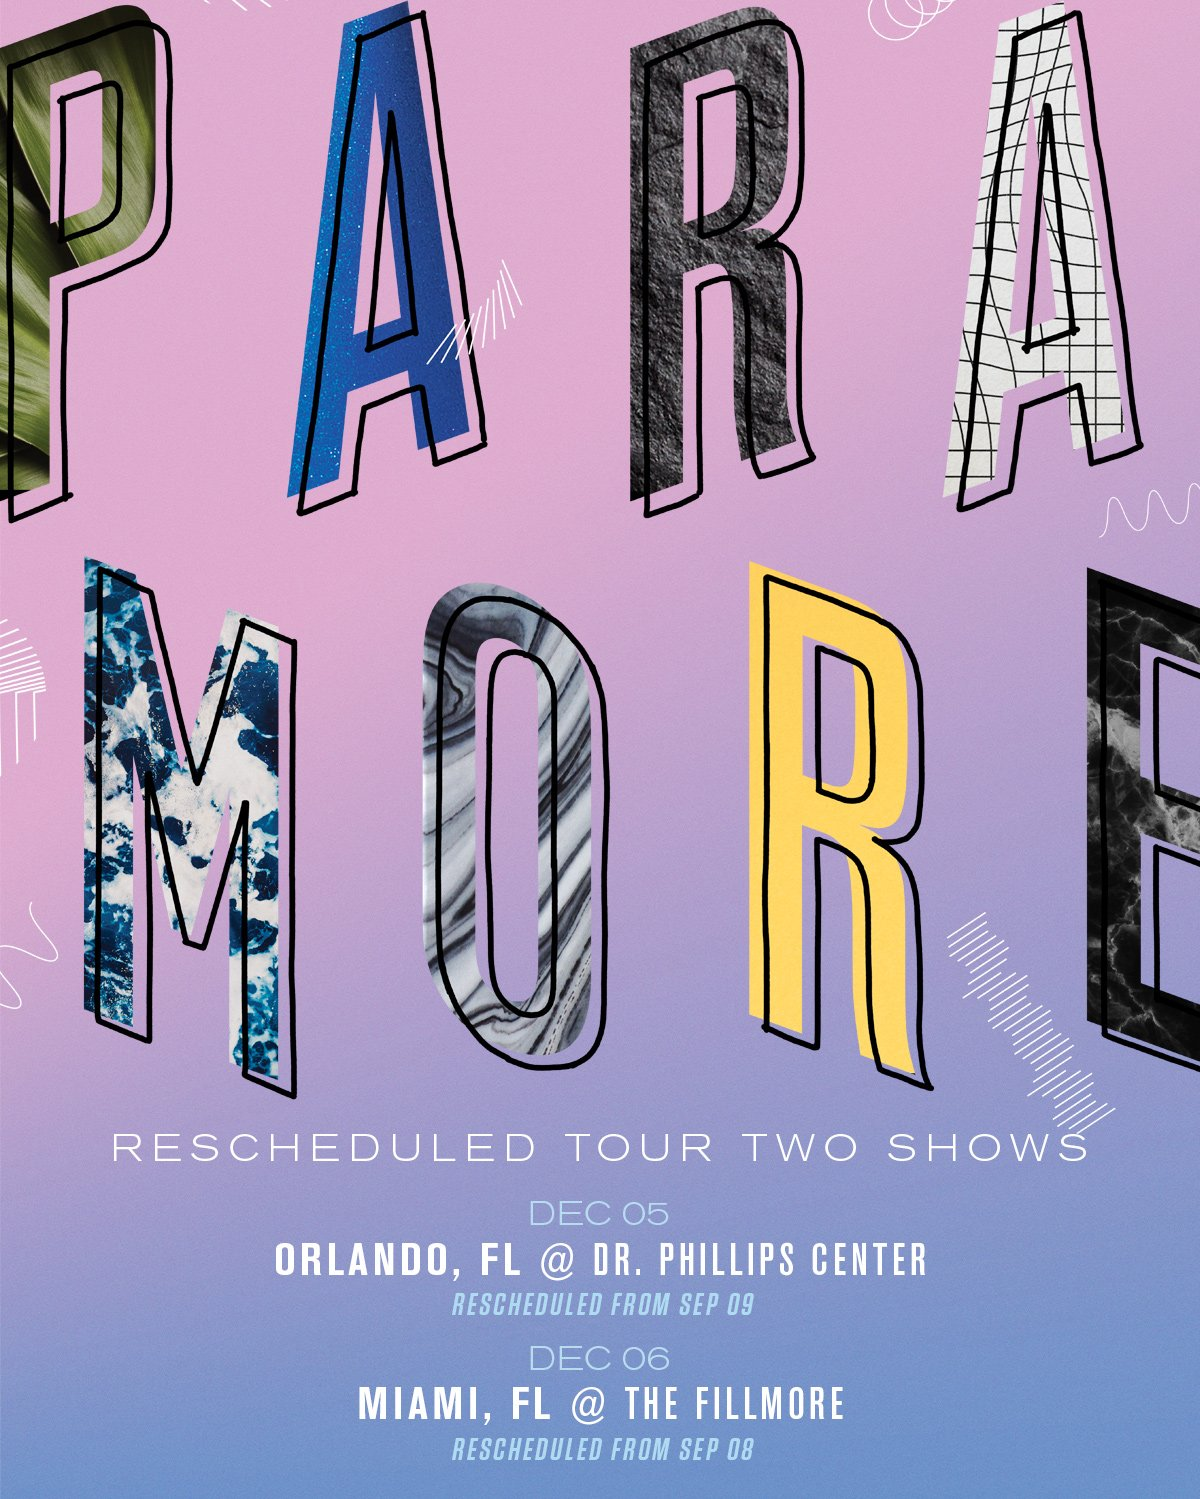 UPDATE: @paramore's Miami & Orlando shows have been rescheduled to December. https://t.co/AORKk118Lx   stay safe FL! https://t.co/nys66a042H